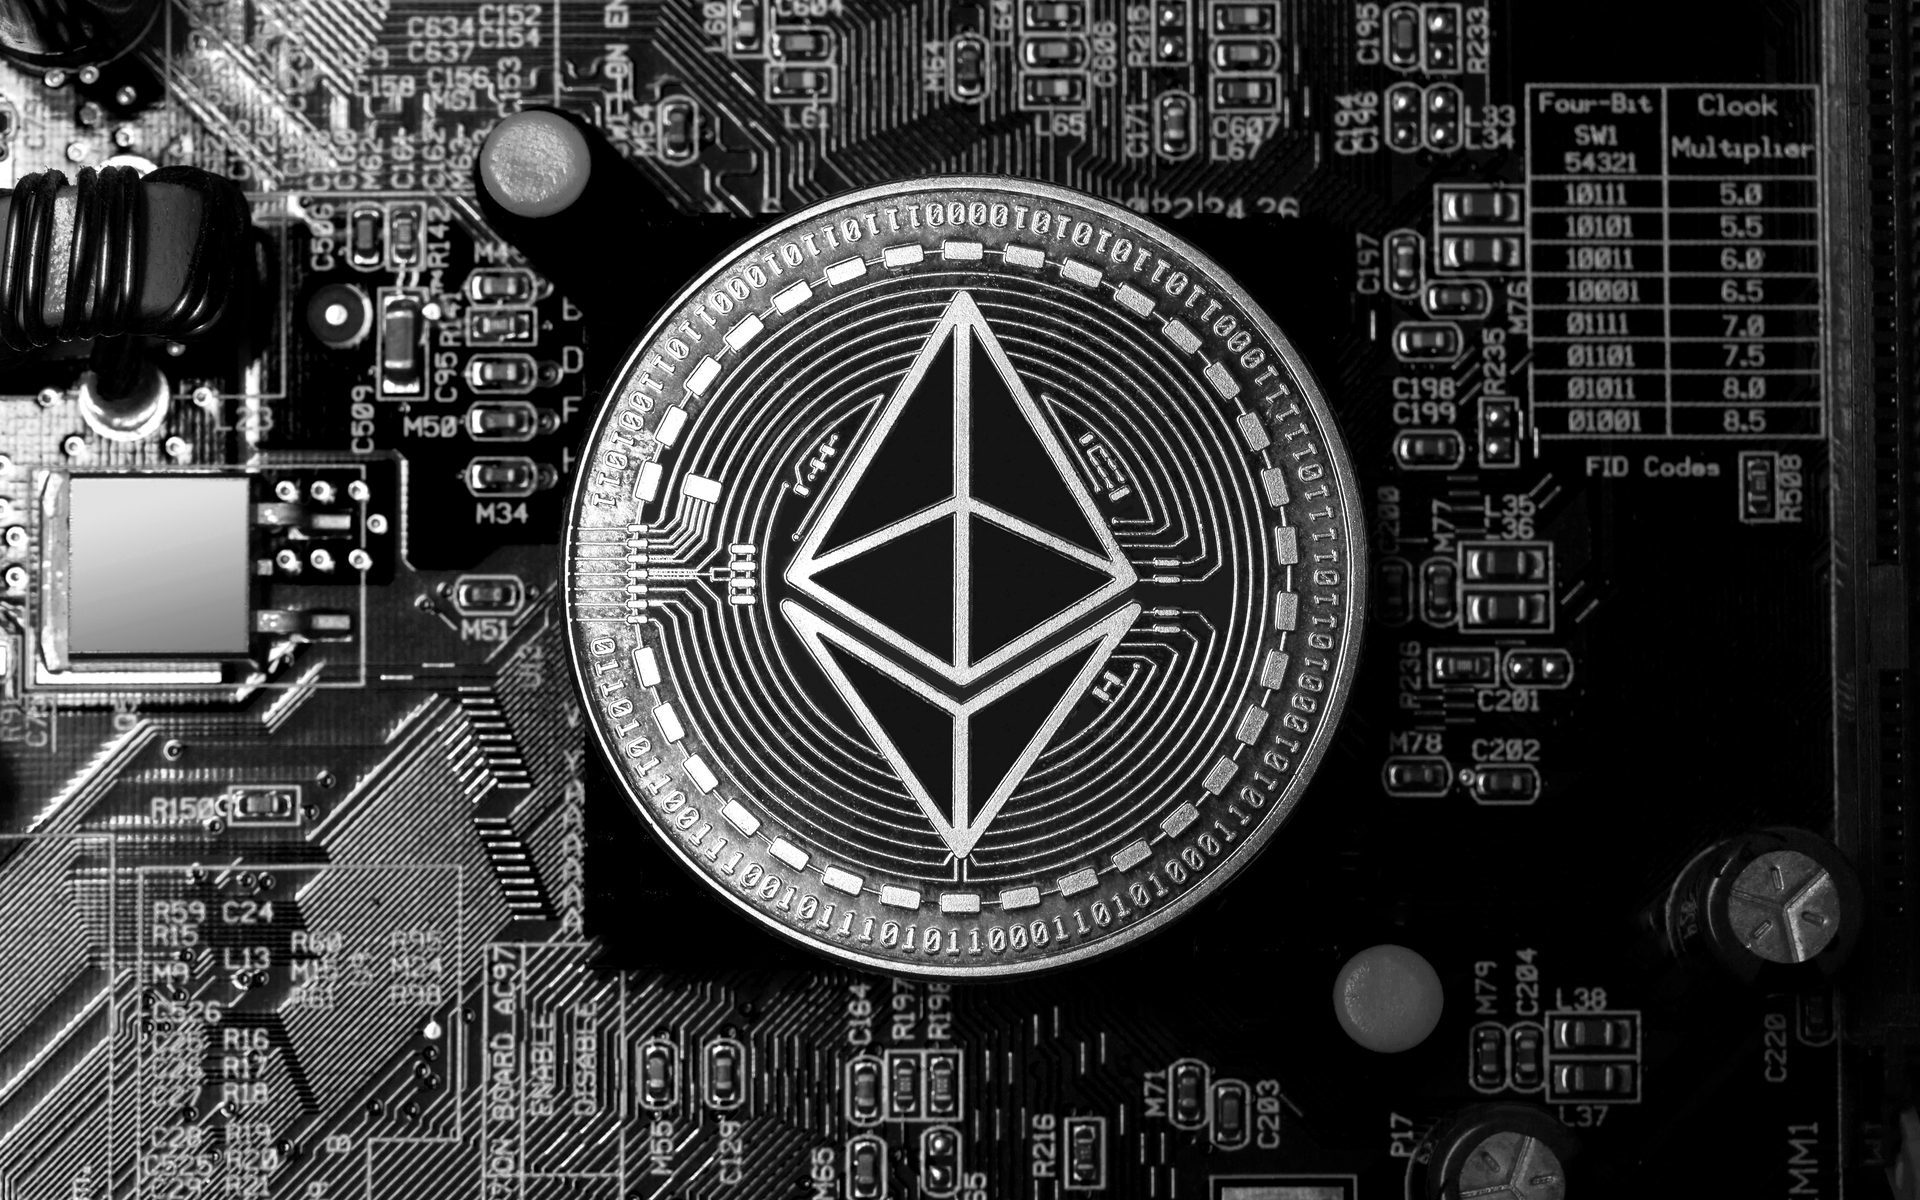 ethereum 2.0 developments